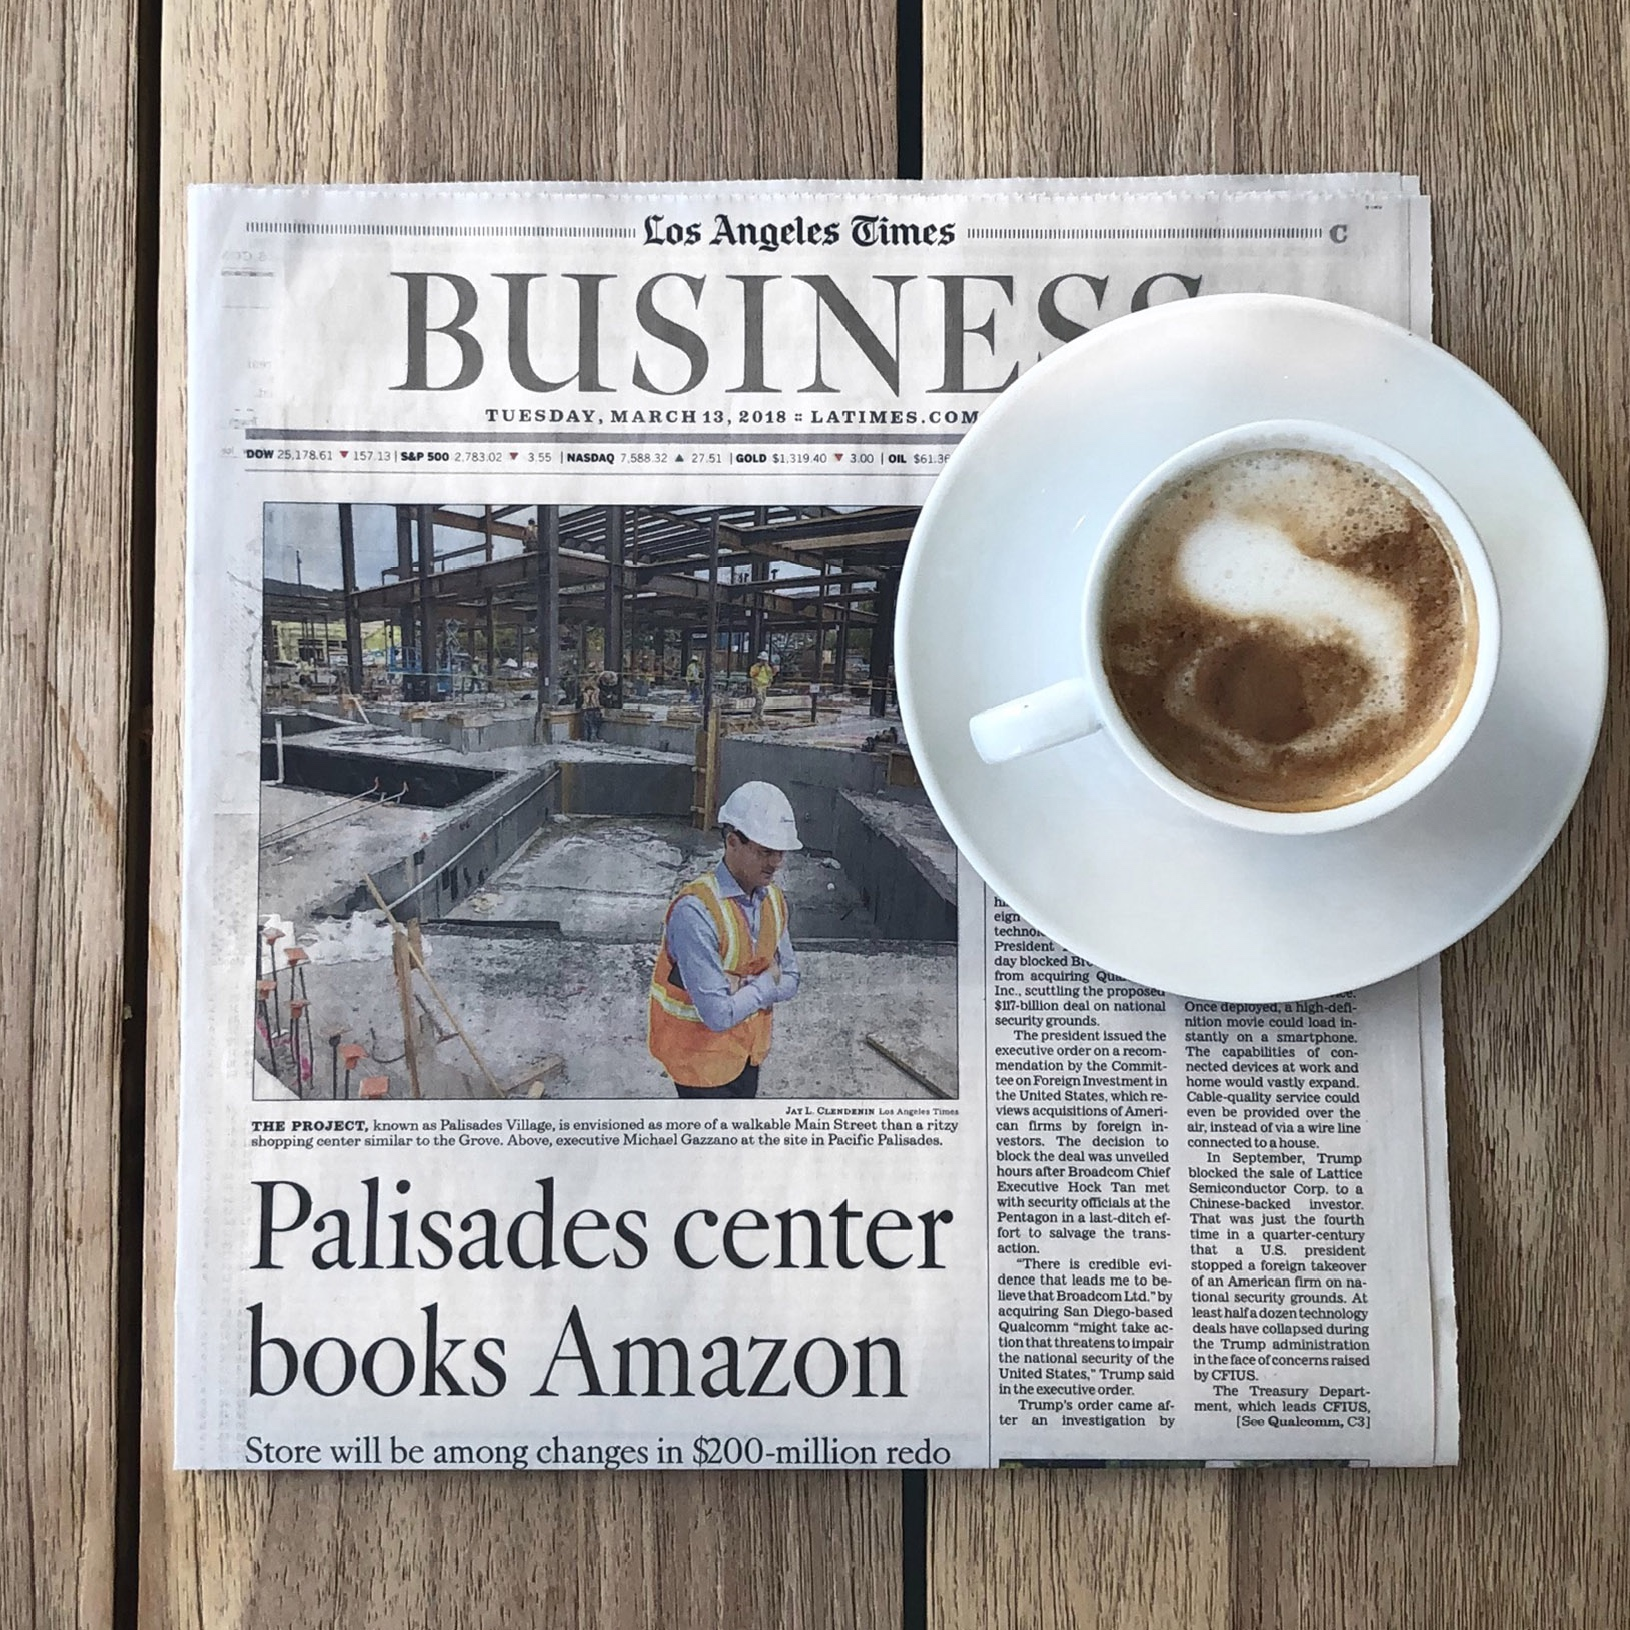 Amazon Books Heading to Pacific Palisades